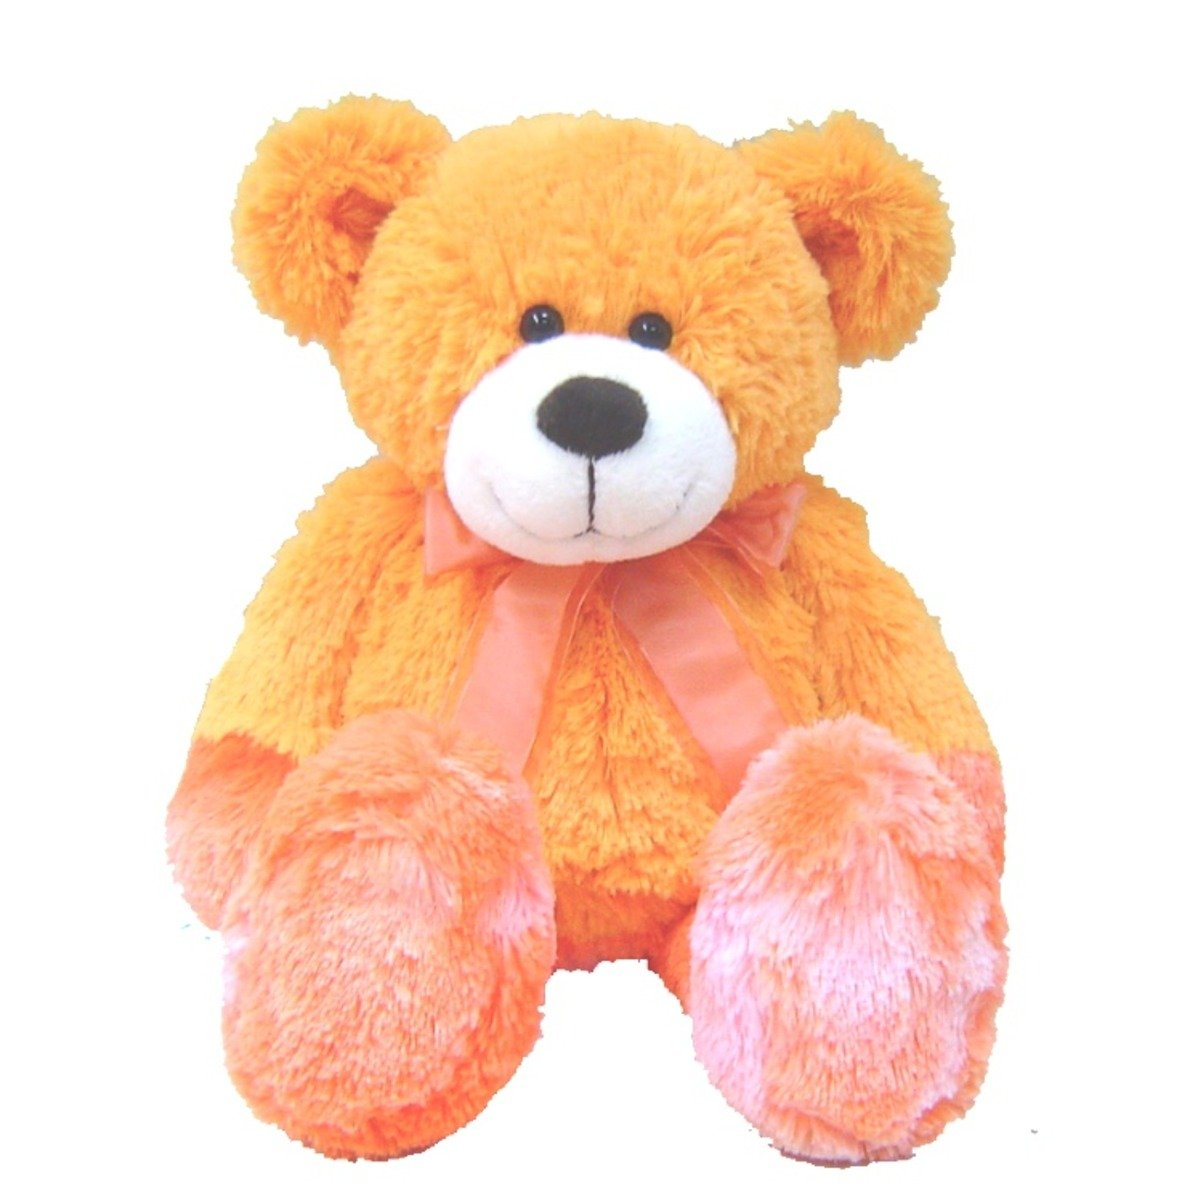 COLOR RICH - Soda Bear (45cm) - C18676